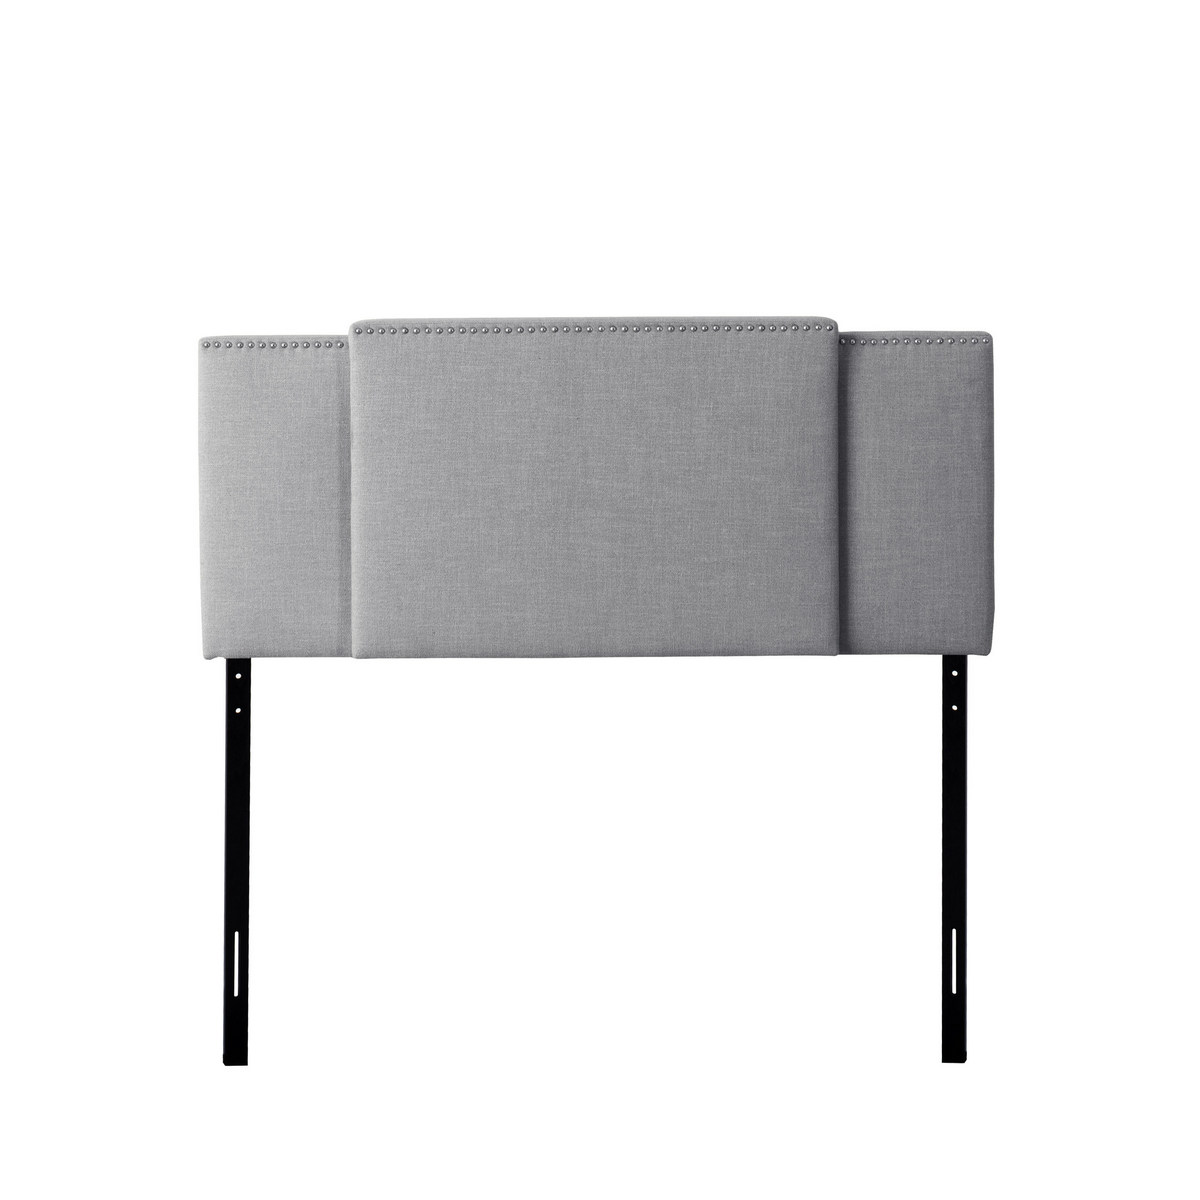 CorLiving BBT-960-A Fairfield 3-in-1 Expandable Panel Headboard, Double, Queen or King, Grey Padded Fabric